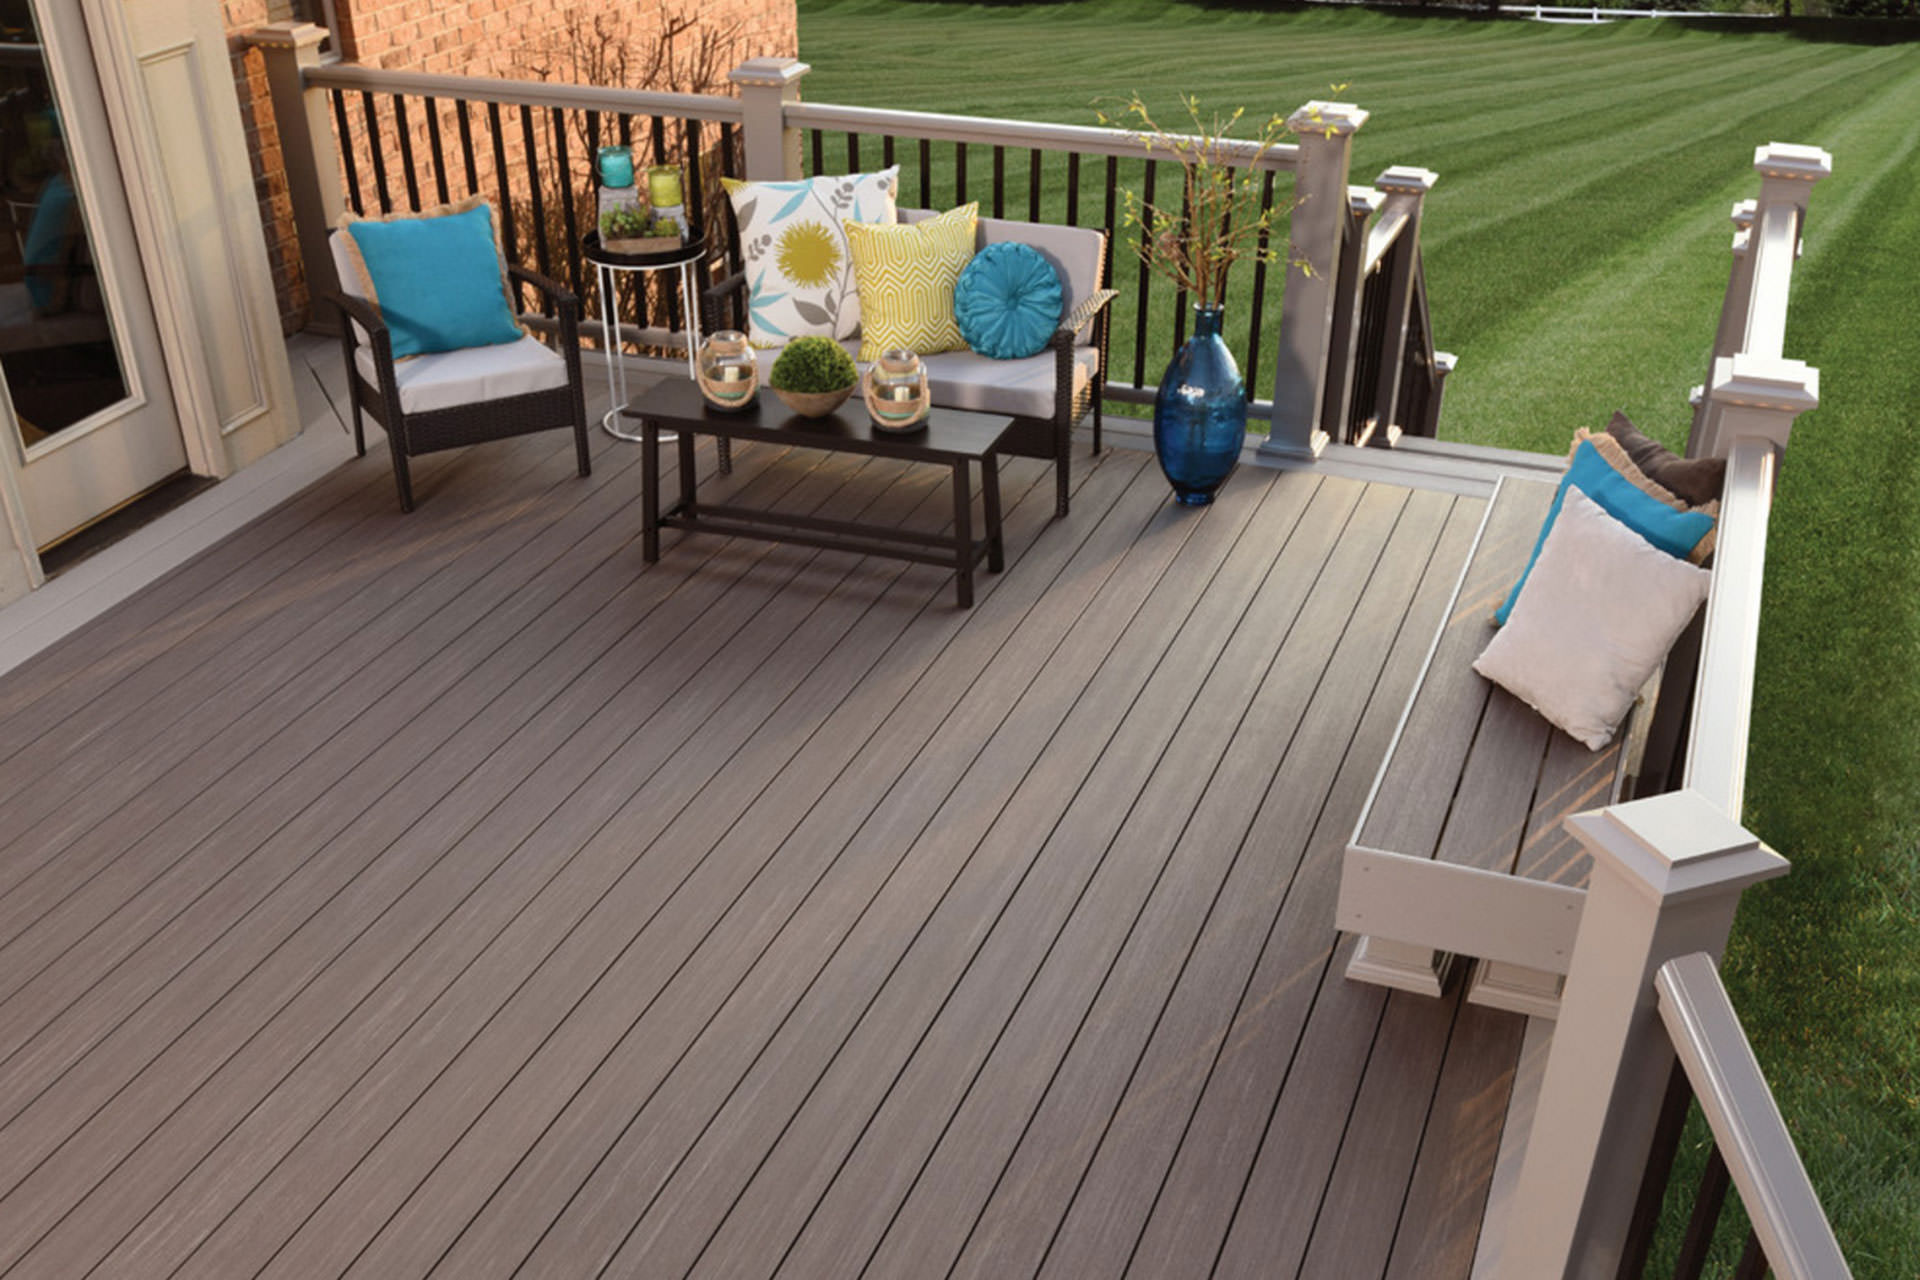 Pvc Composite Decking : Wood composite or pvc a guide to choosing deck materials